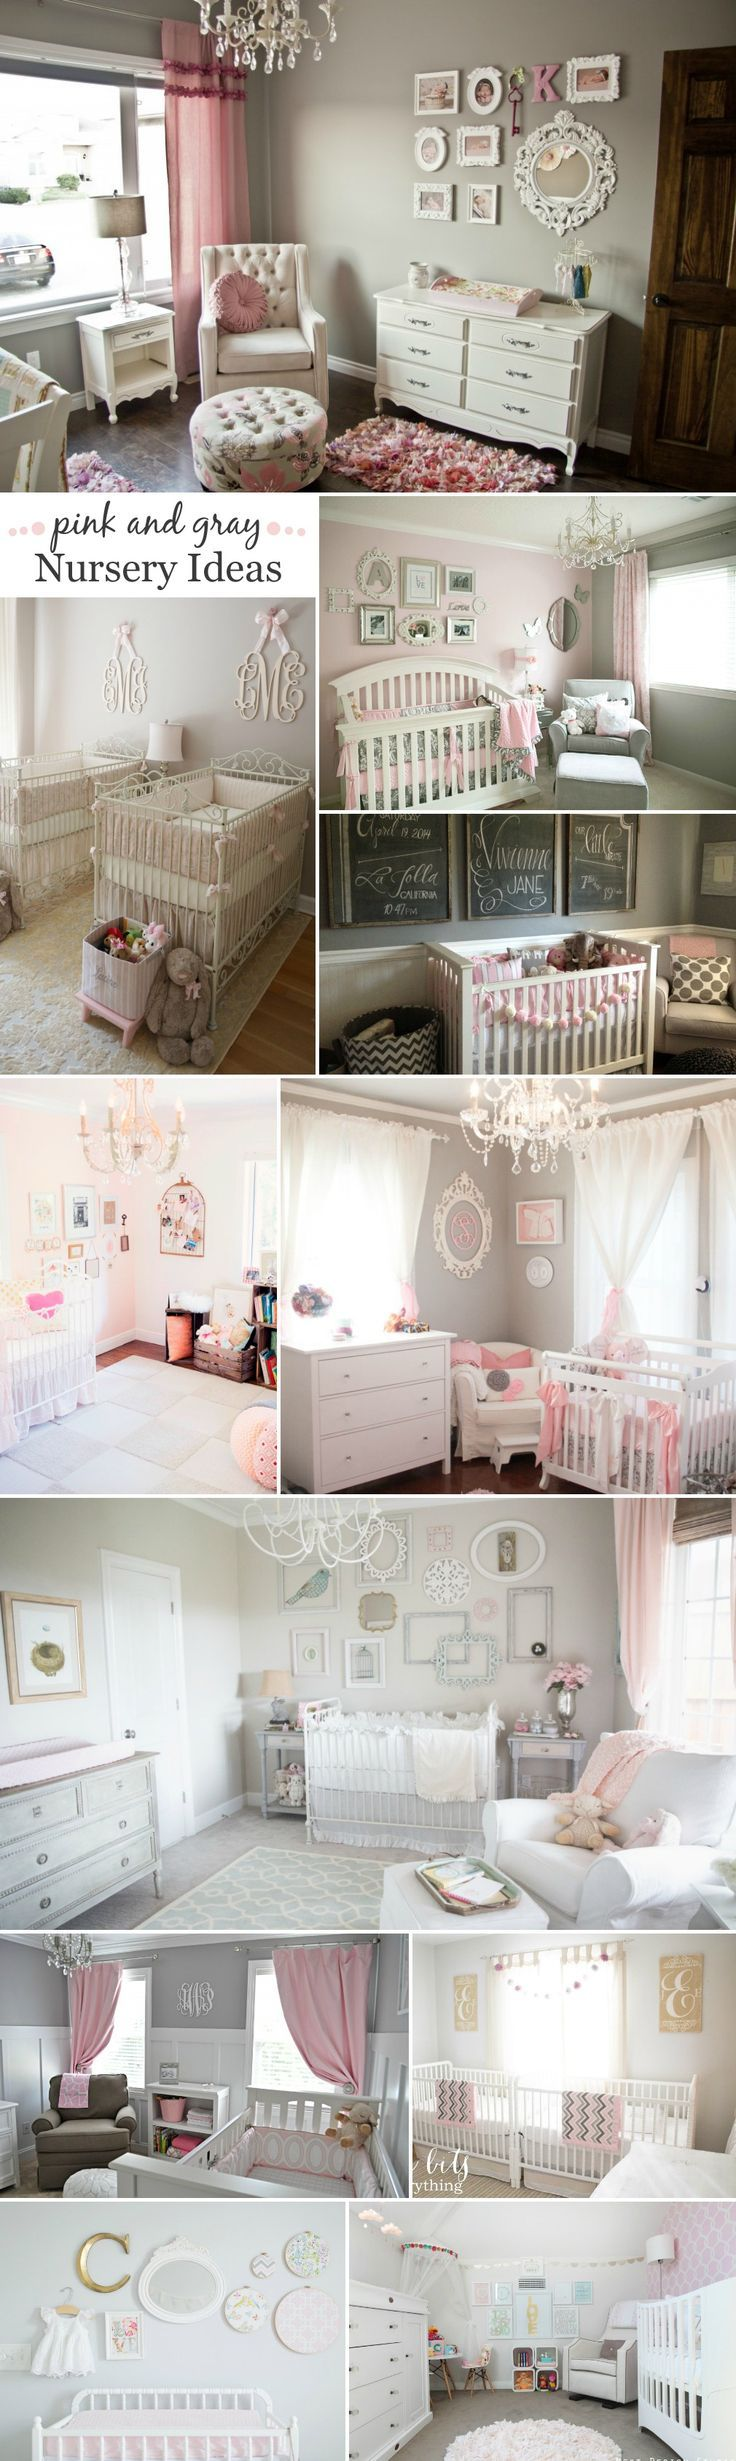 8 best decoracion de habitacion para bebe images on for Decoracion de habitacion de bebe